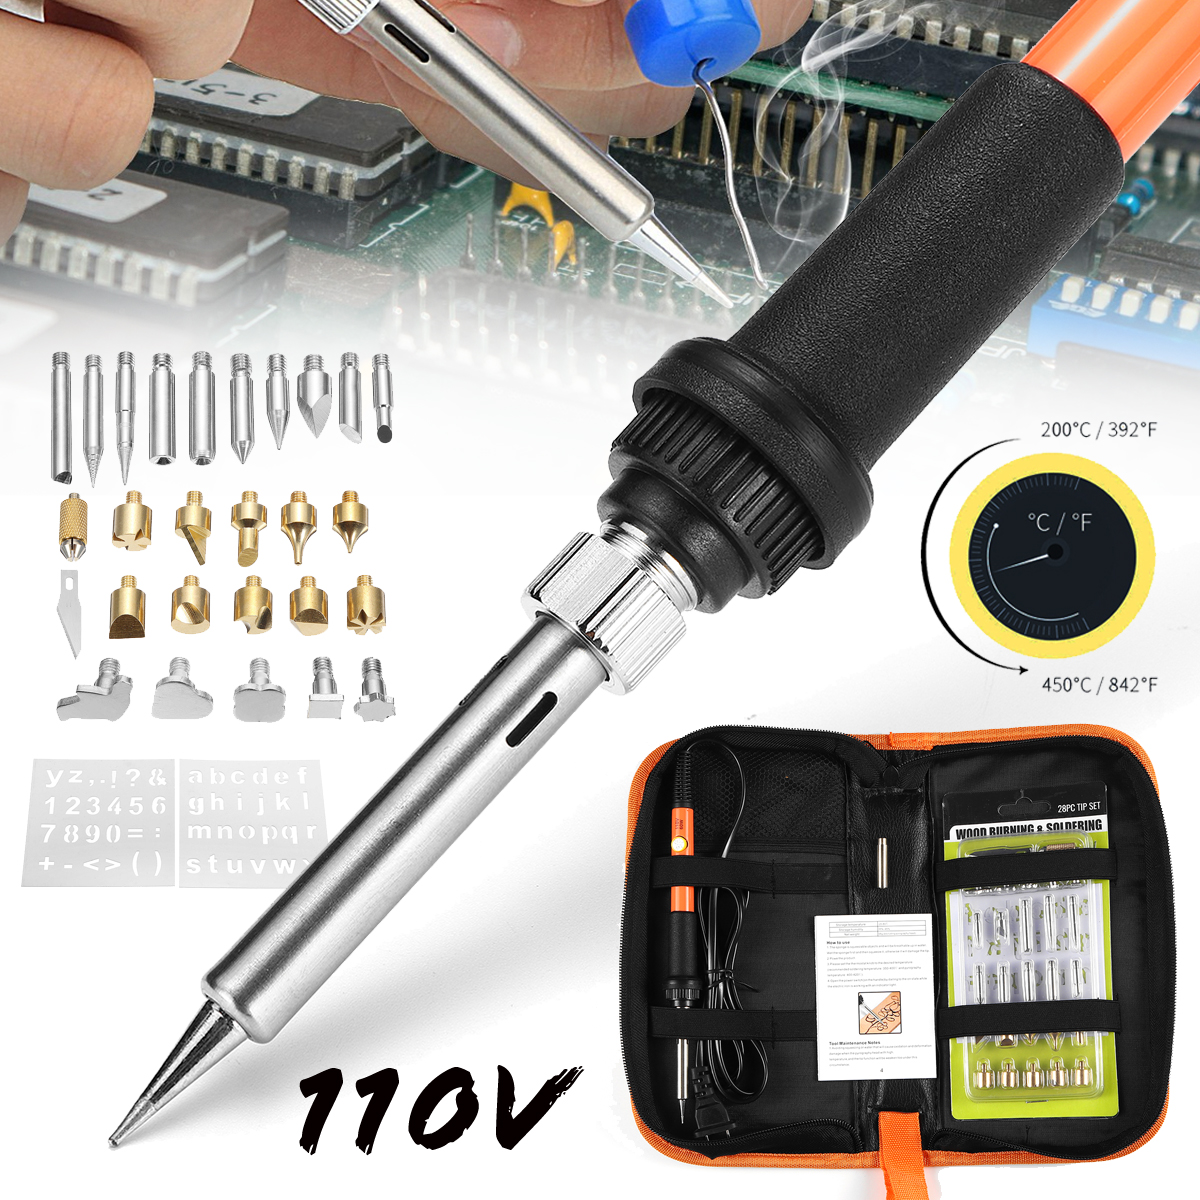 28Pcs 110V 60W Adjustable Temperature Solder Iron Tool Kit Wood Burning Pen Assorted Tips Set US Plug with Bag